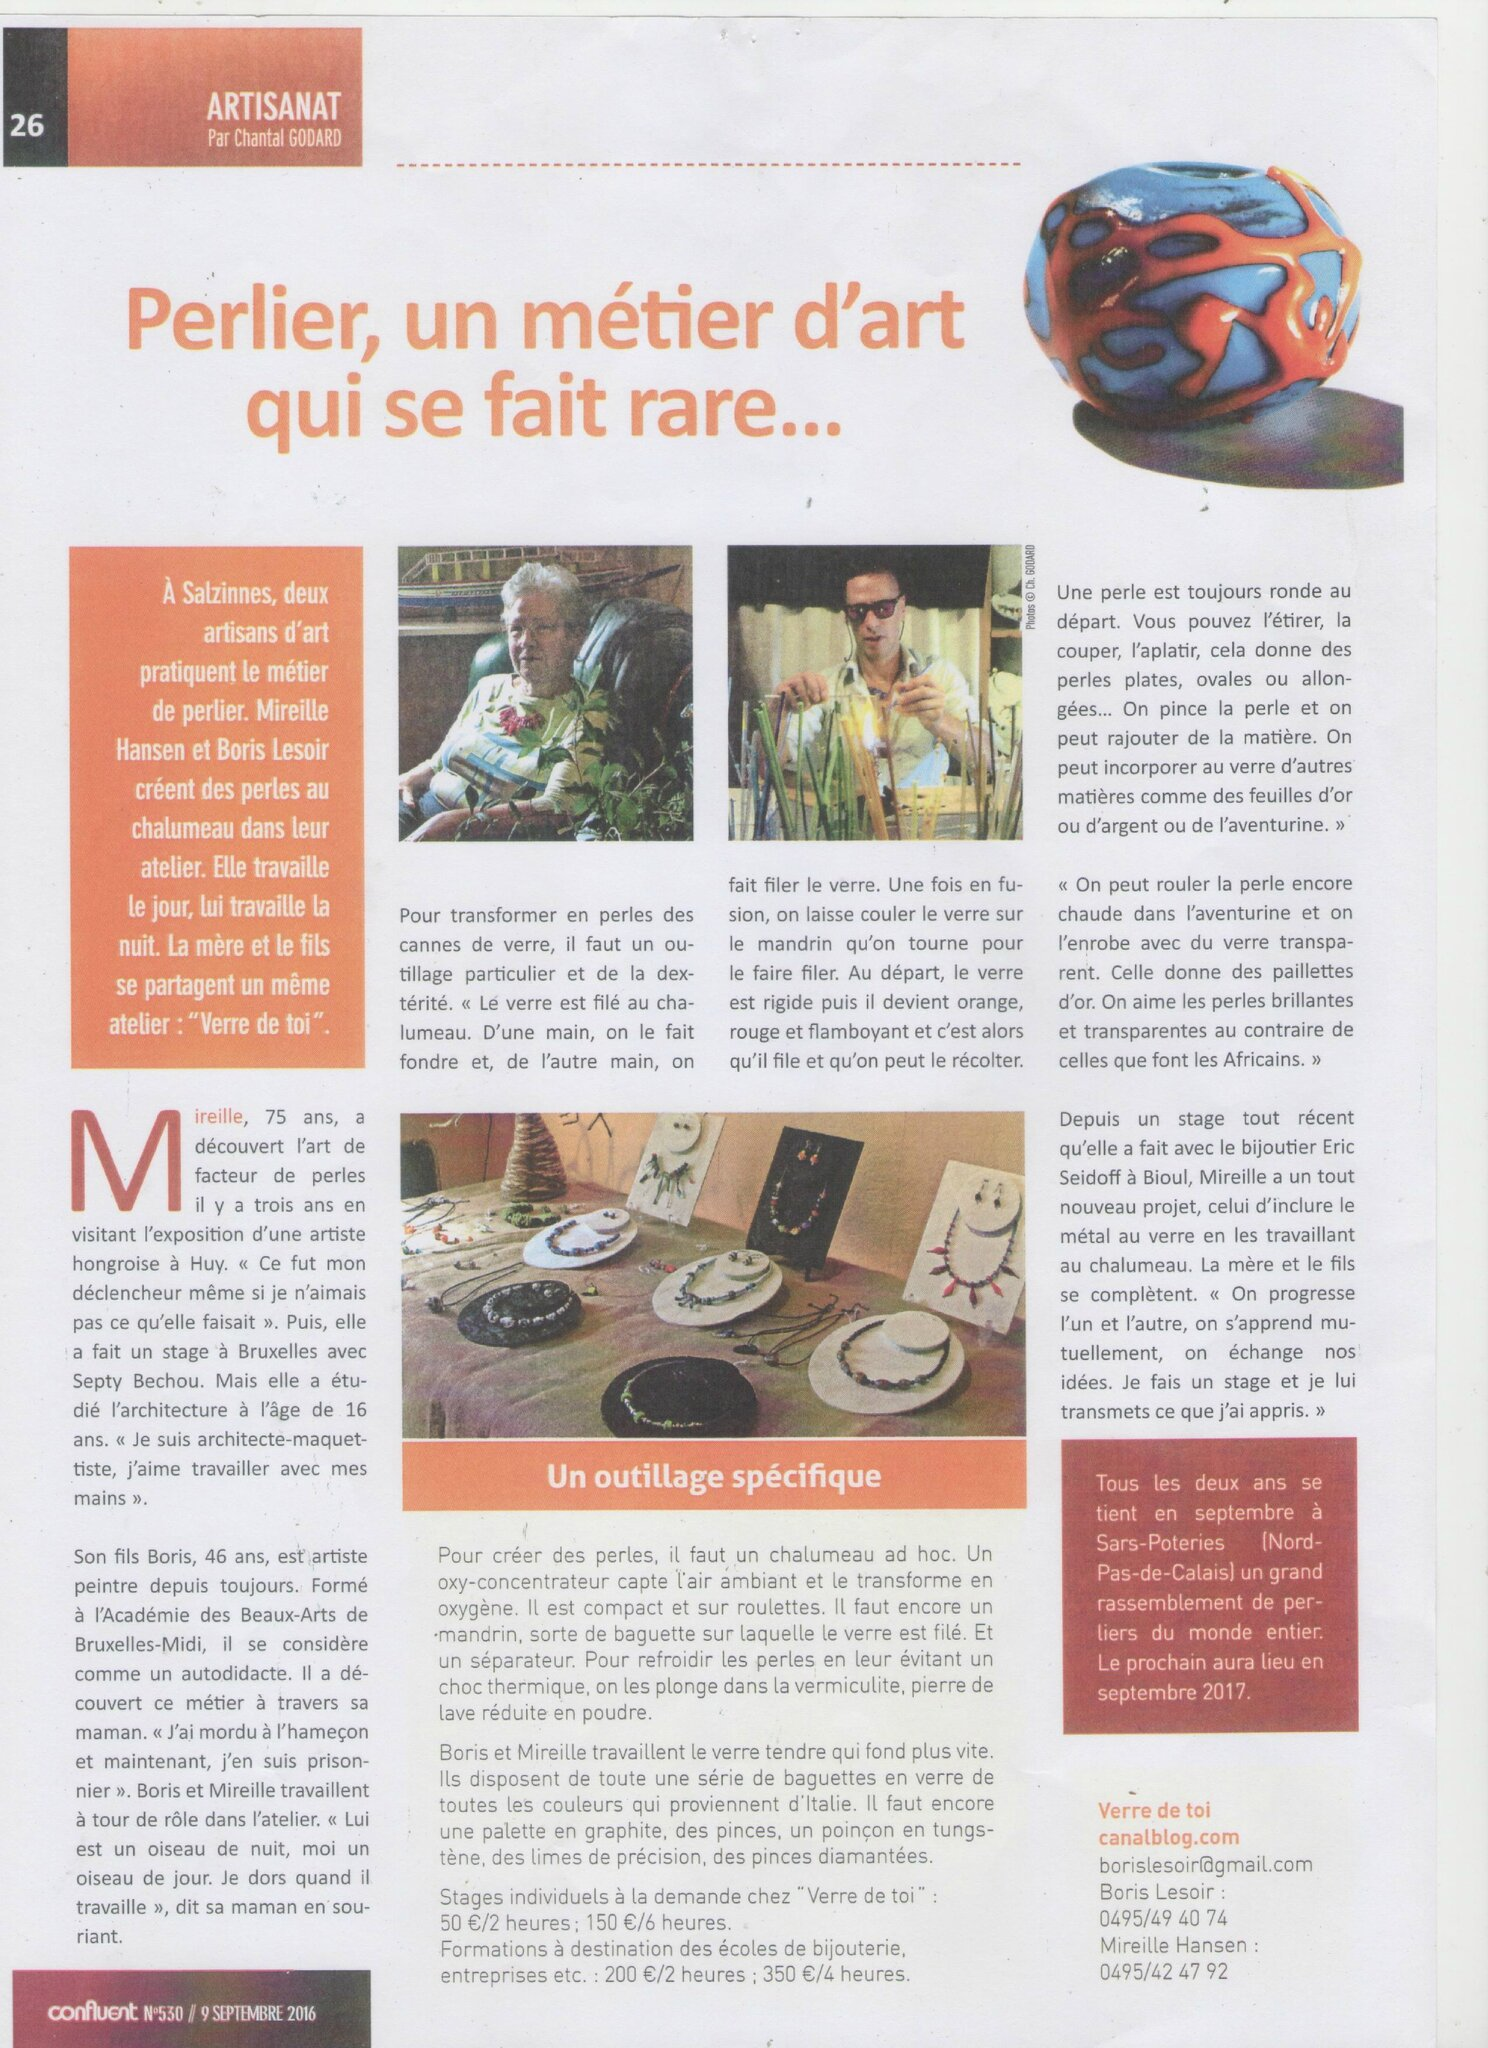 Article de presse du journal local : Le Confluent (septembre 2016)